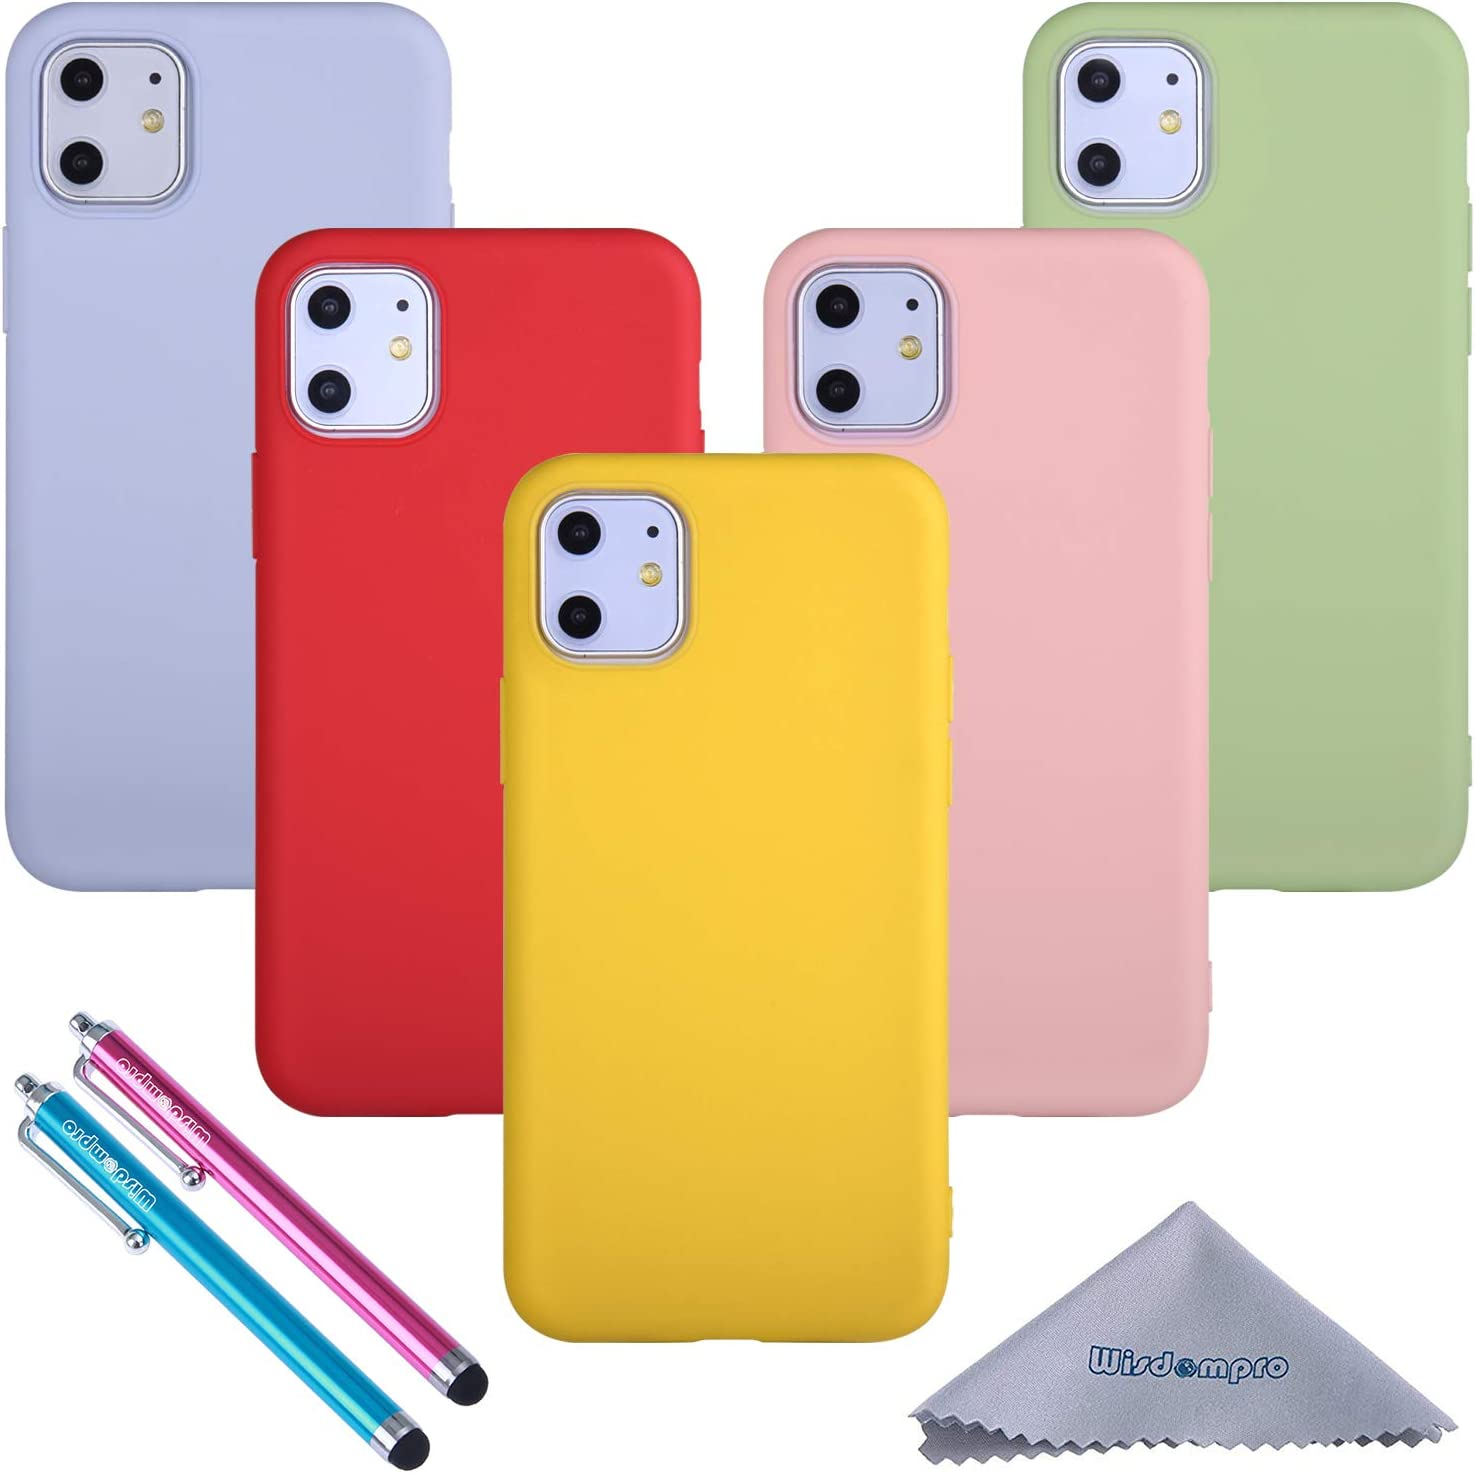 Wisdompro iPhone 11 Case Bundle of 5 Pack Extra Thin Slim Soft TPU Gel Protective Case Cover for 6.1 Inches Apple iPhone 11 (Green, Light Blue, Pink, Yellow, Red)